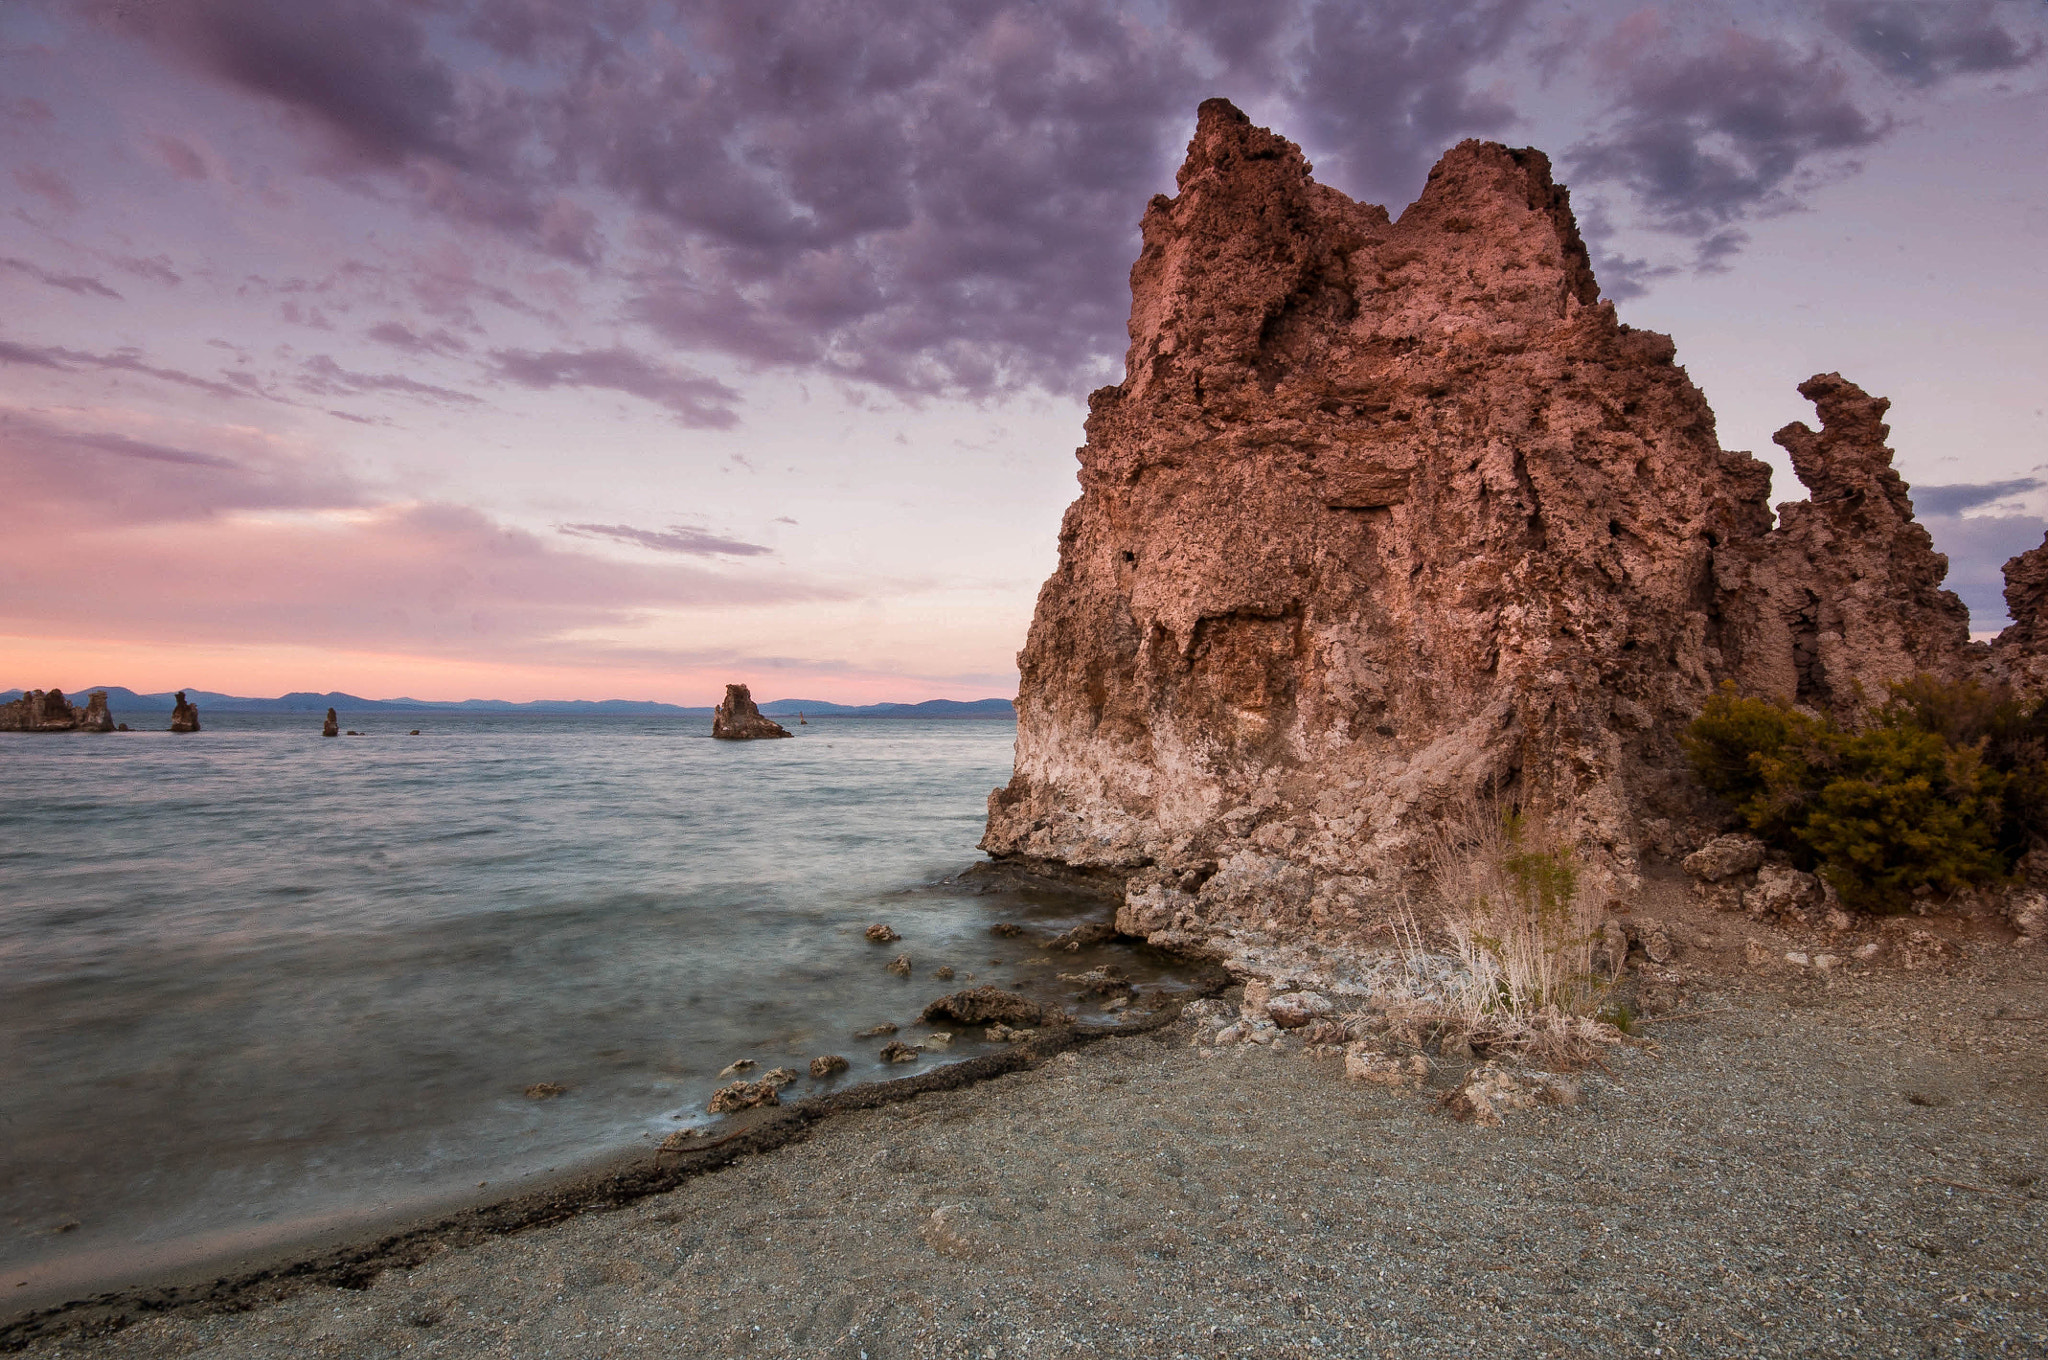 Photograph Monolake by VisionPhotographer  on 500px